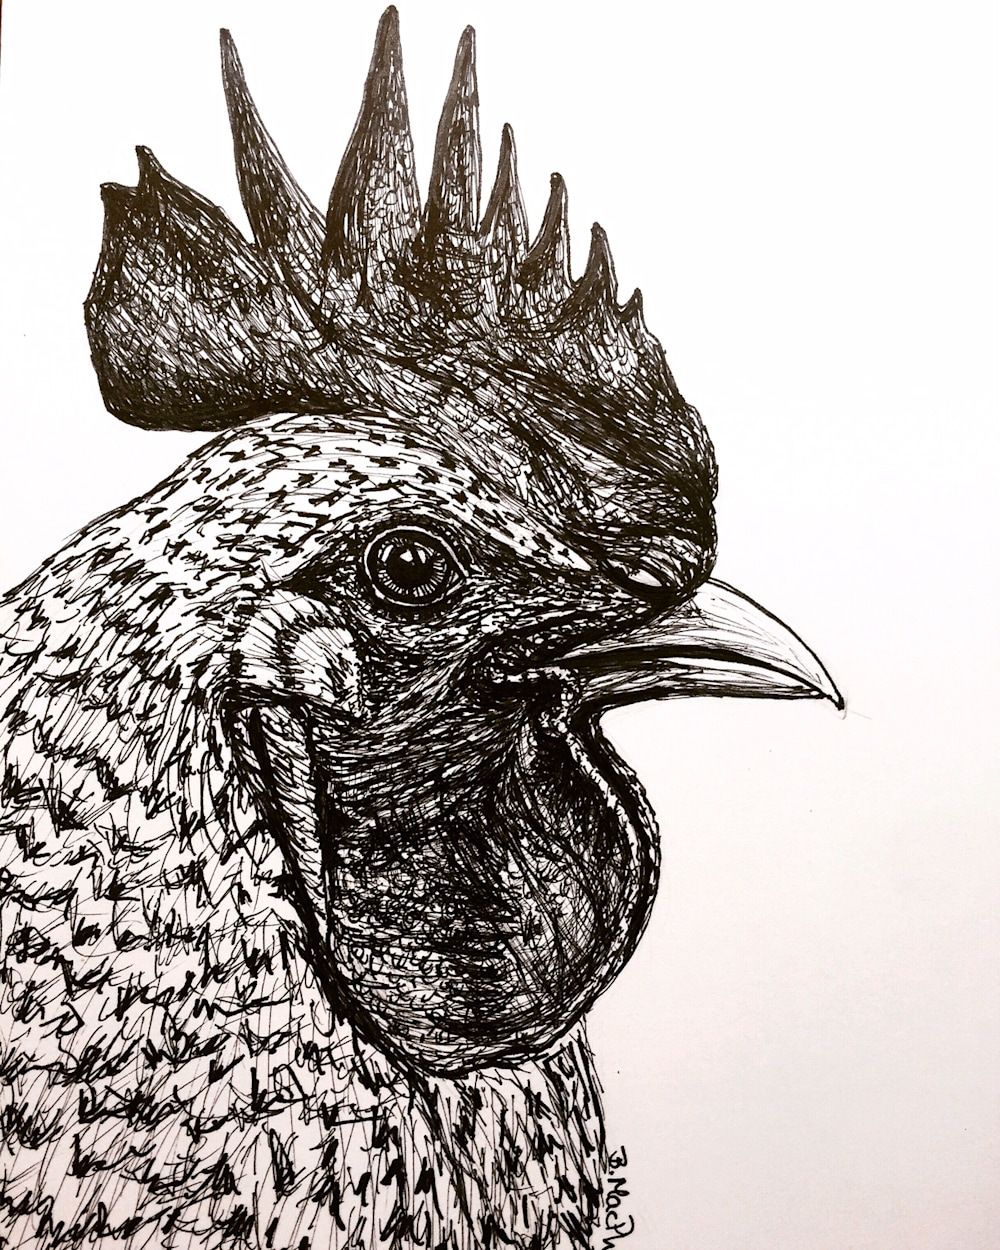 Chicken Pen and Ink Illustration by Becky MacPherson